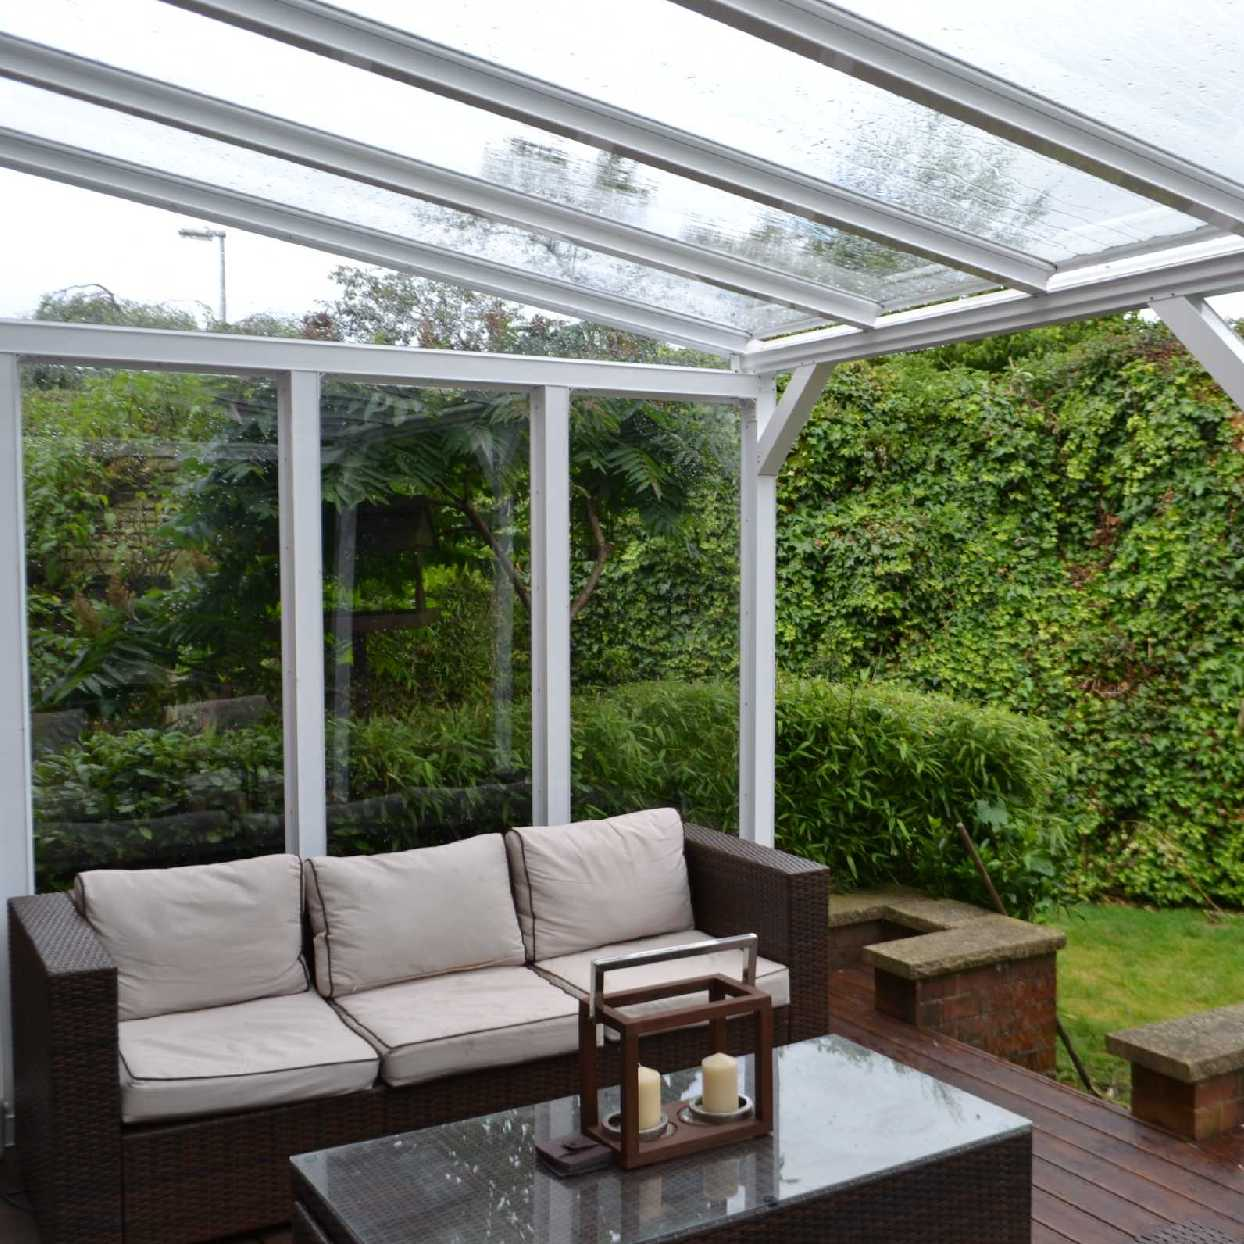 Omega Smart Lean-To Canopy with 6mm Glass Clear Plate Polycarbonate Glazing - 3.5m (W) x 2.0m (P), (3) Supporting Posts